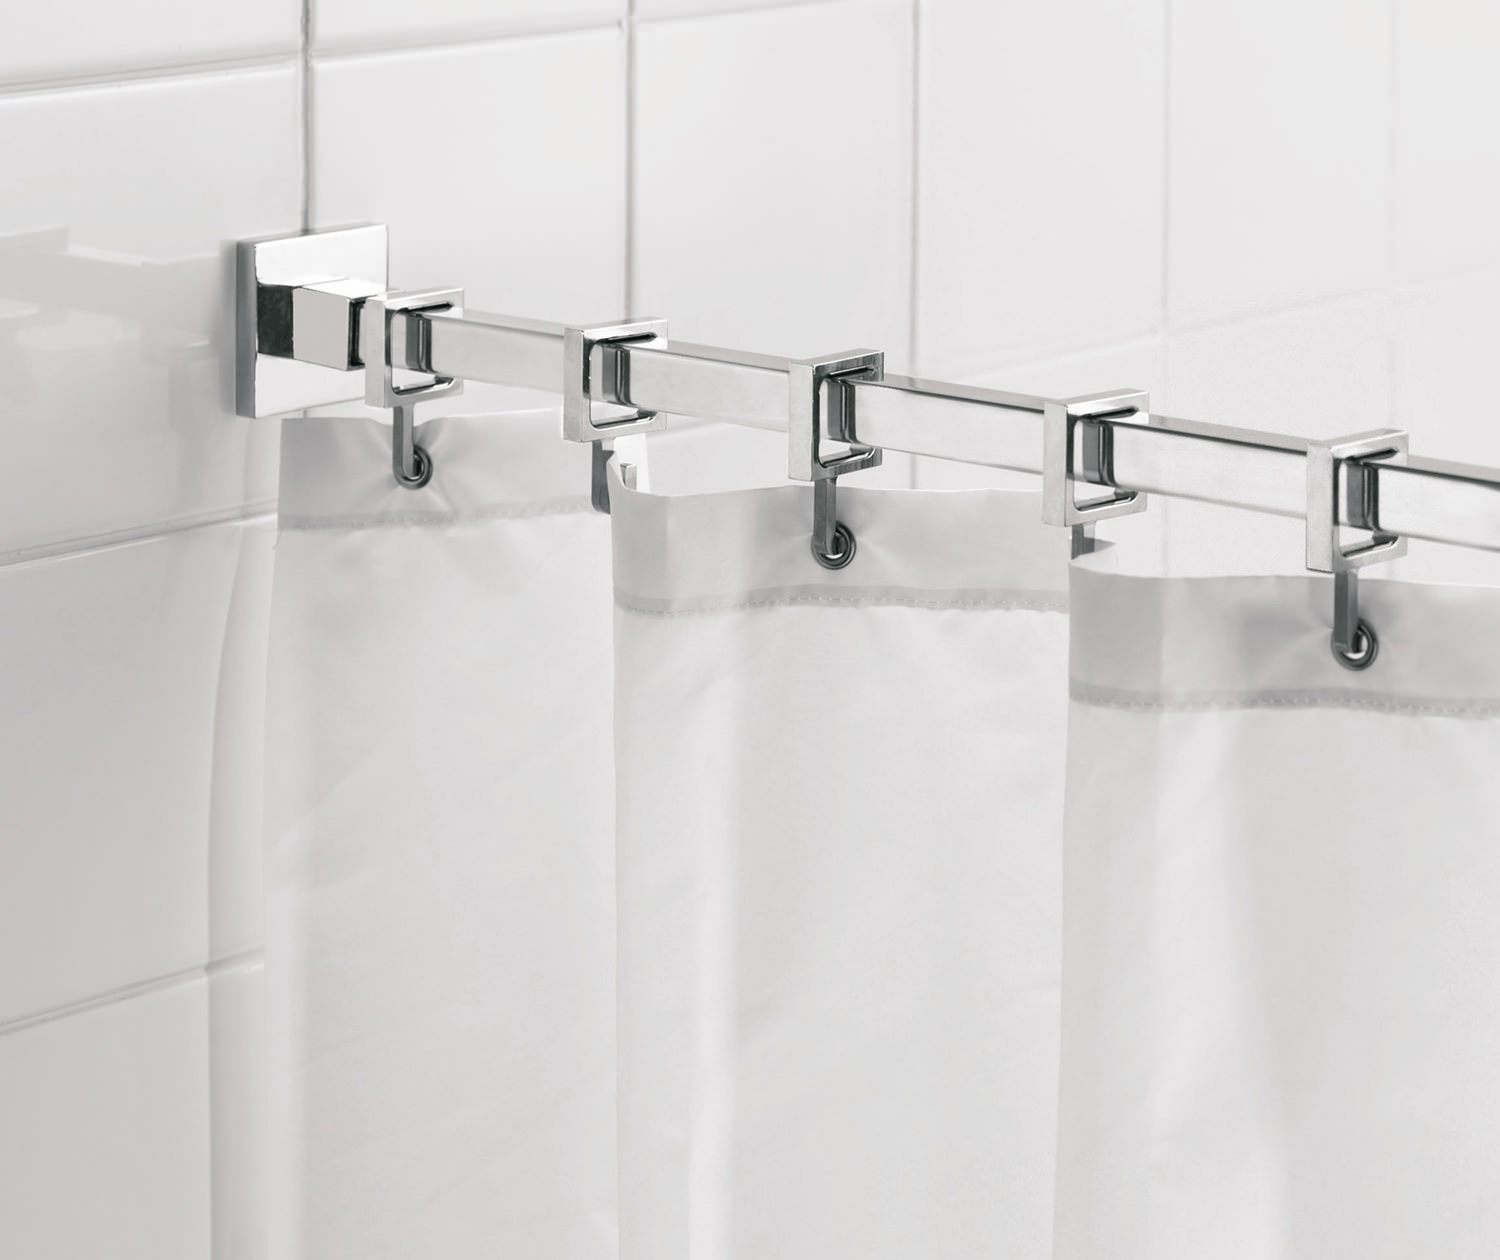 Luxury Square Shower Curtain Rod Ad116441 with regard to dimensions 1500 X 1260